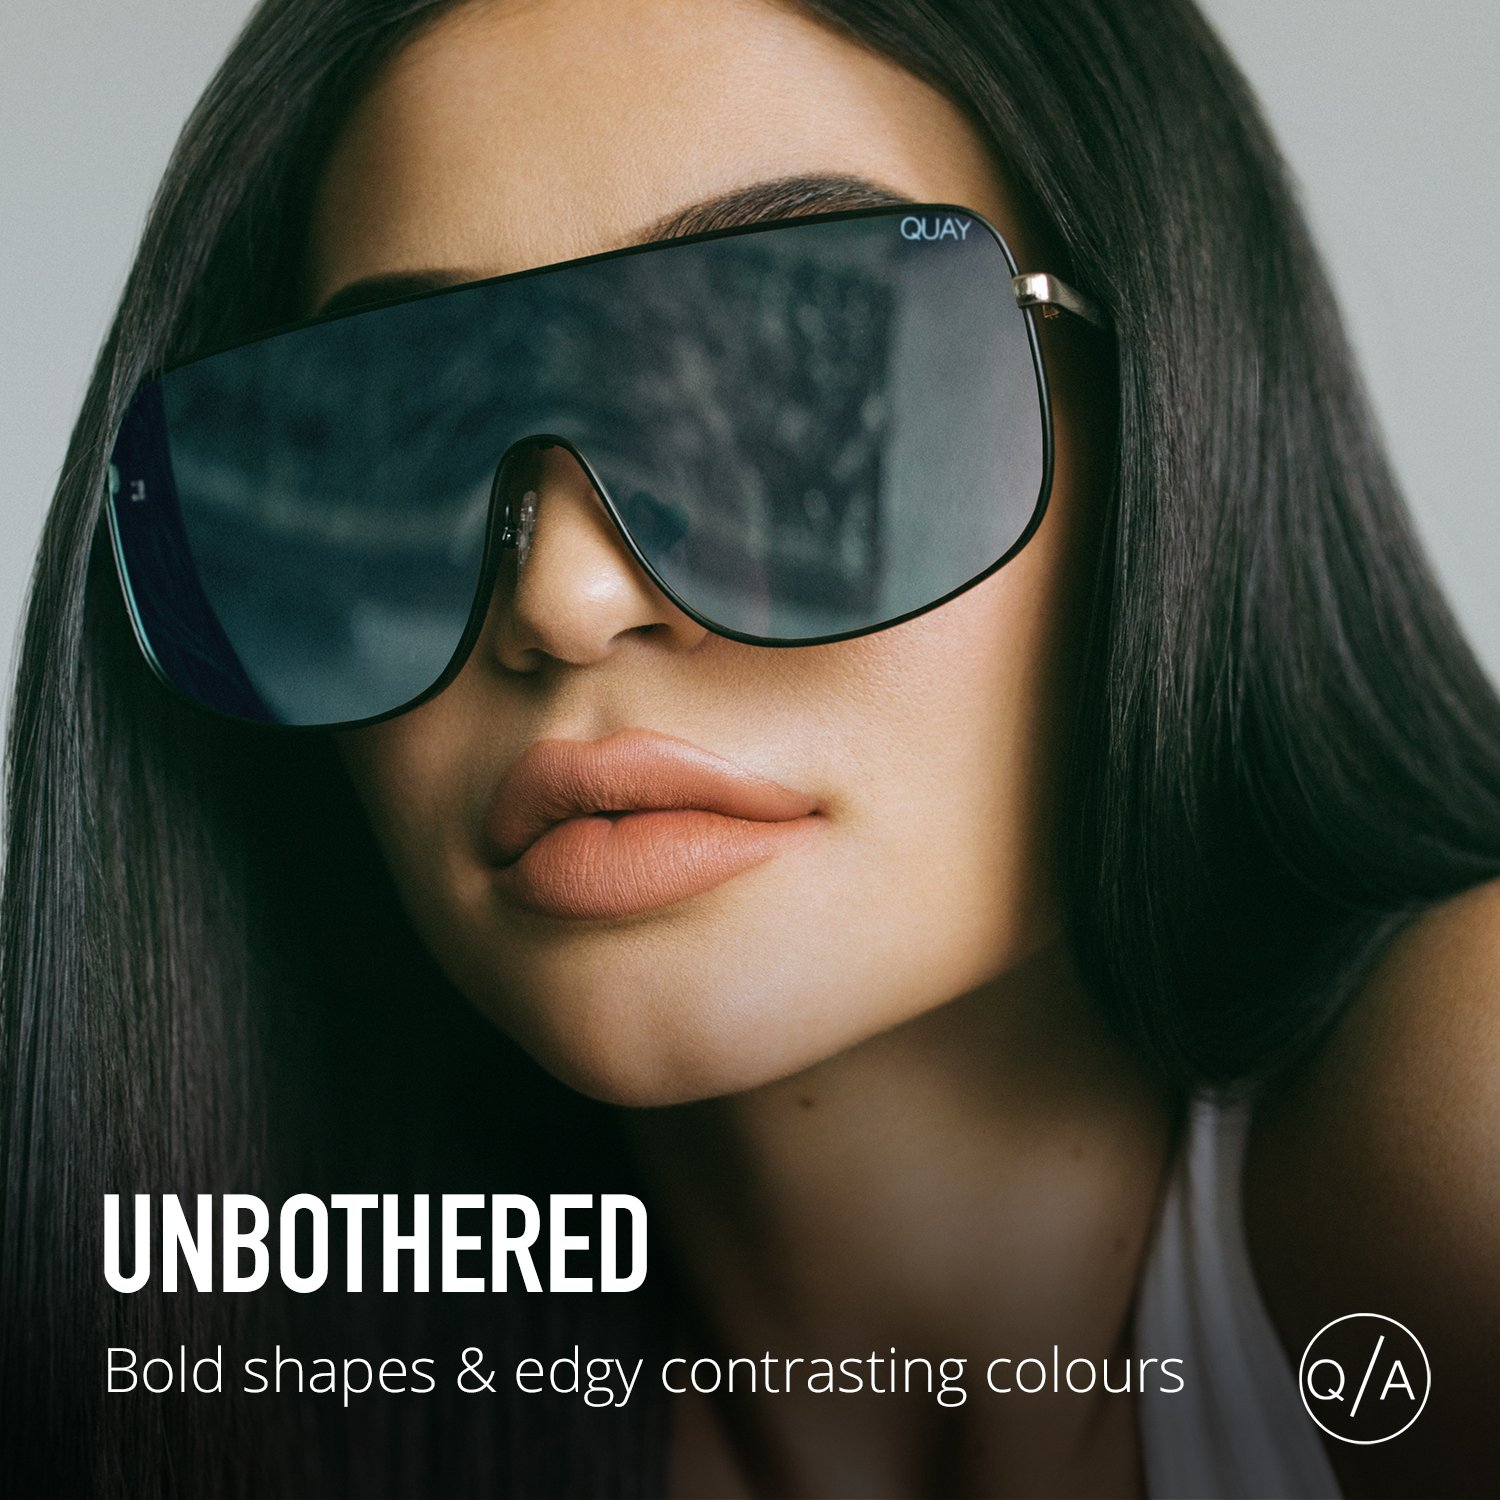 c67fc793fe Amazon.com  Quay Australia UNBOTHERED Women s Sunglasses Shield Sunnies -  Black Mint  Clothing